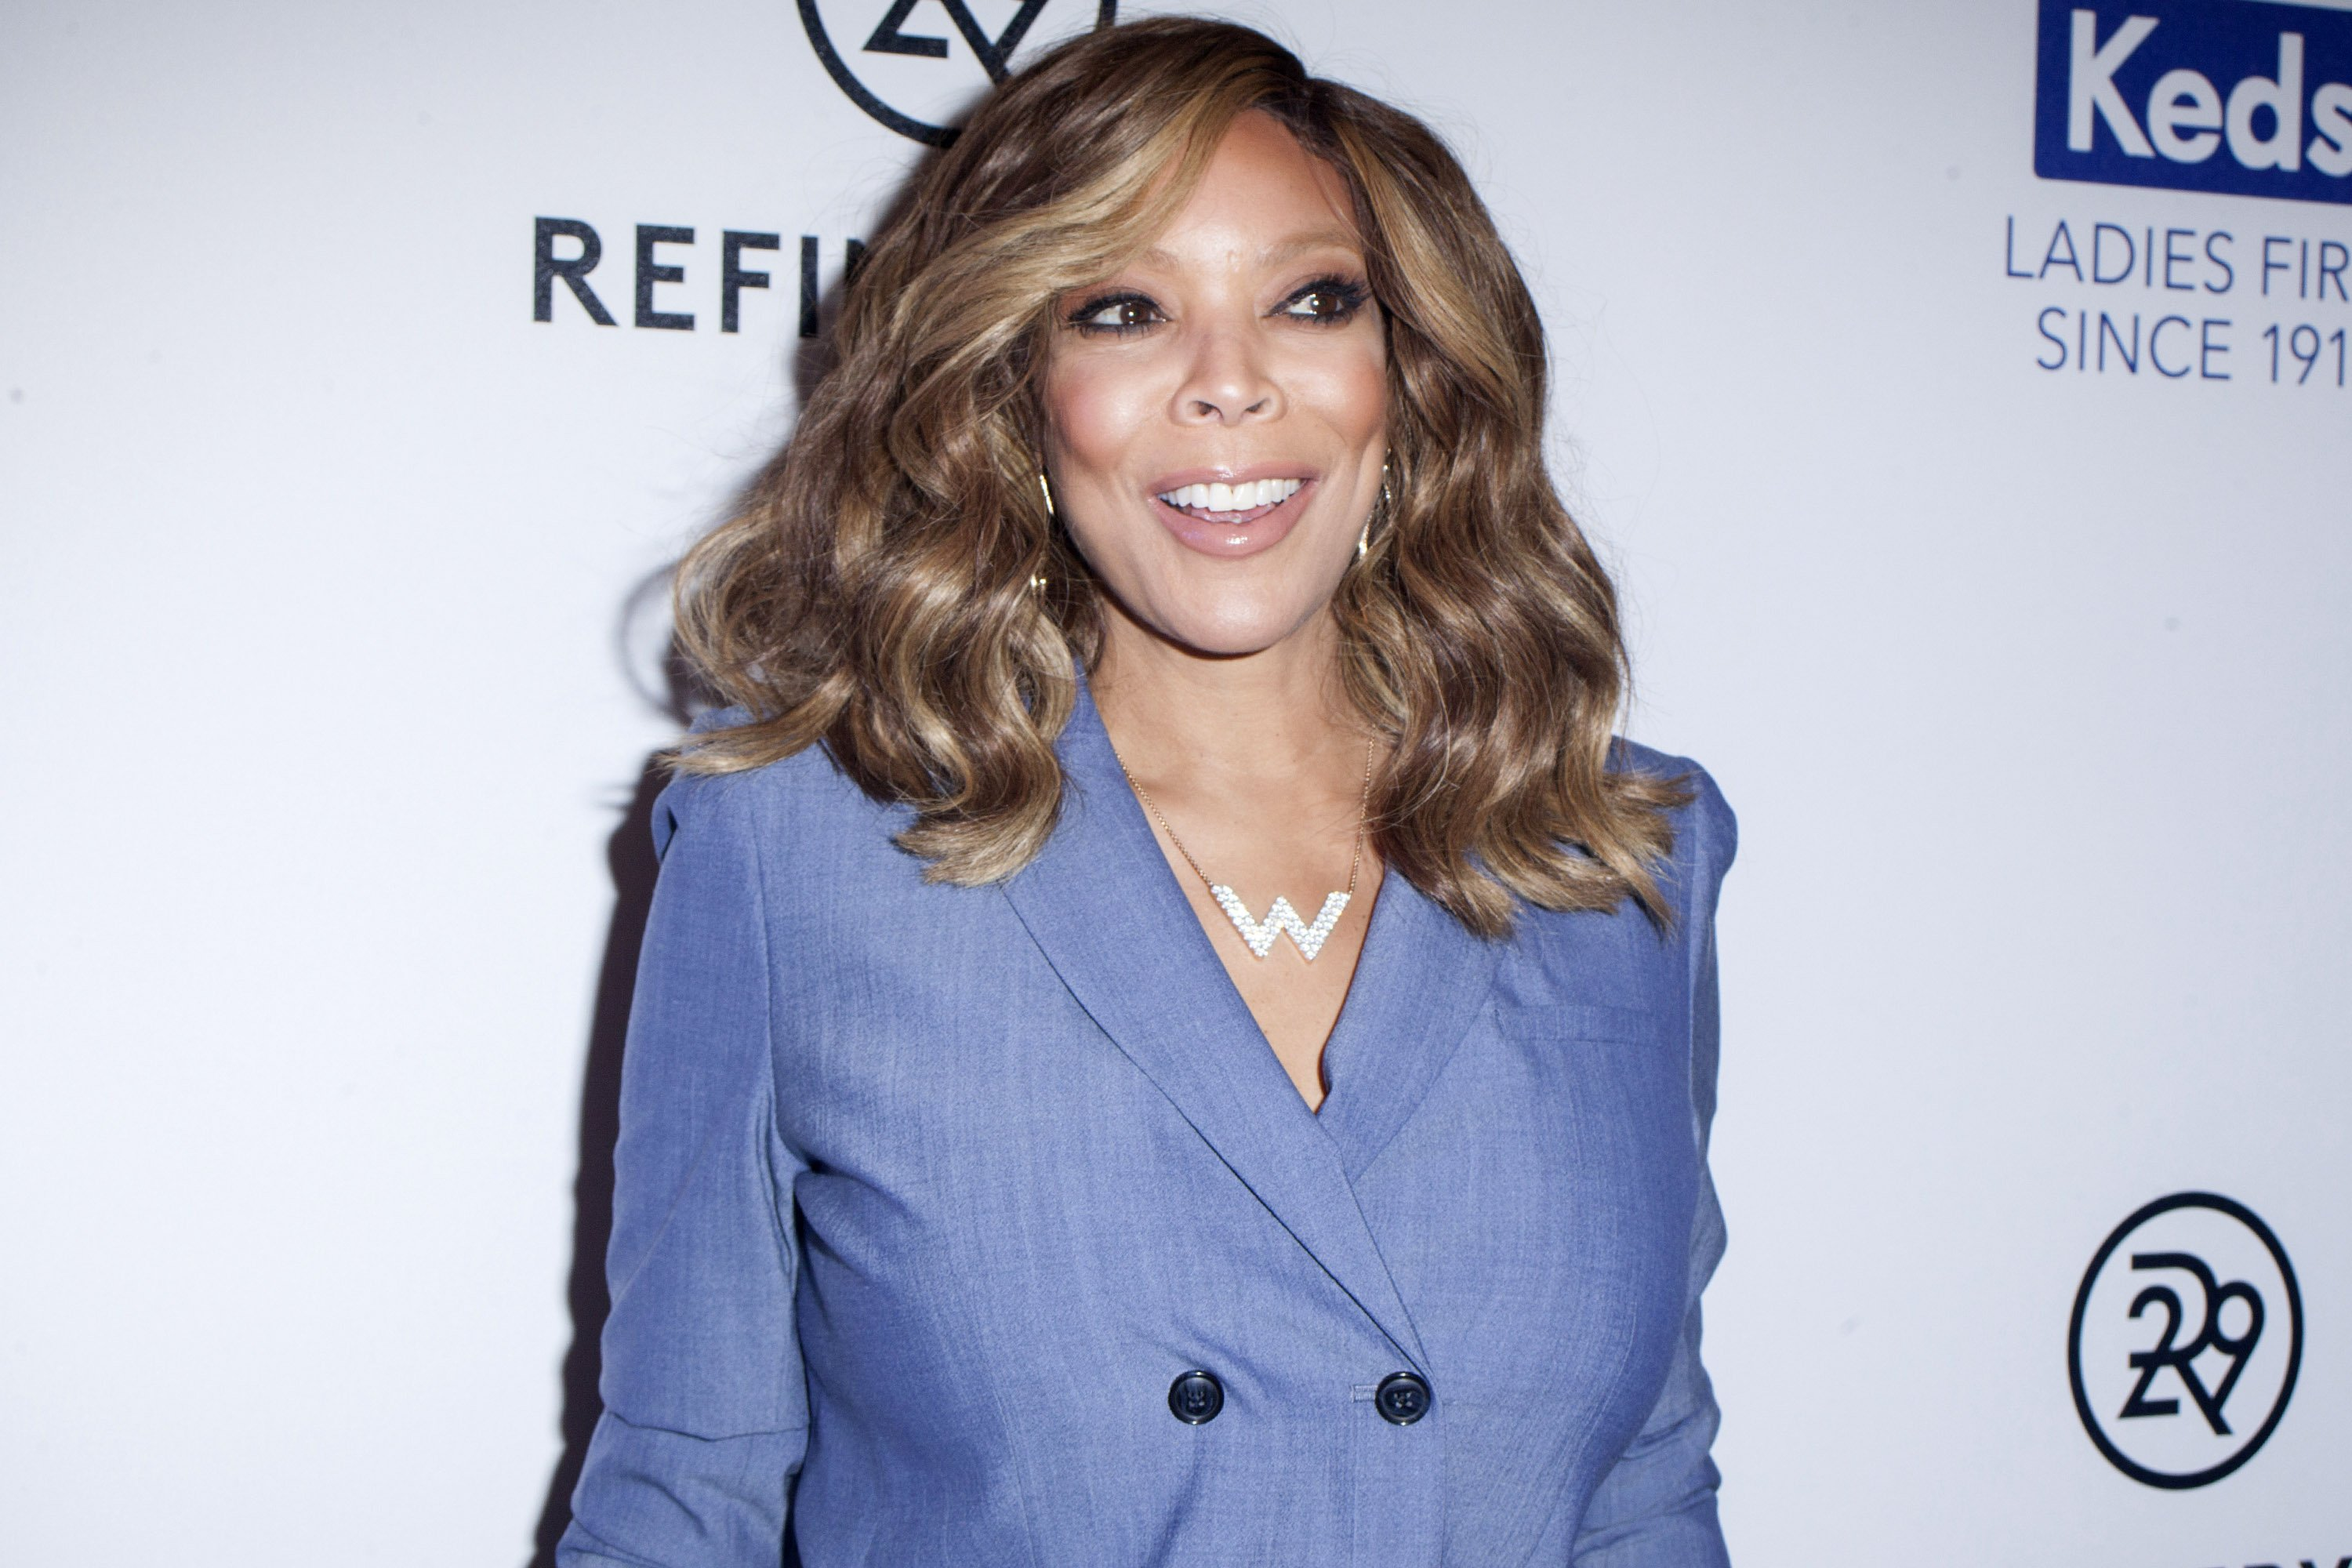 Wendy Williams attends the Keds Centennial Celebration at Center548 on February 10, 2016 in New York City. |Photo: Getty Images